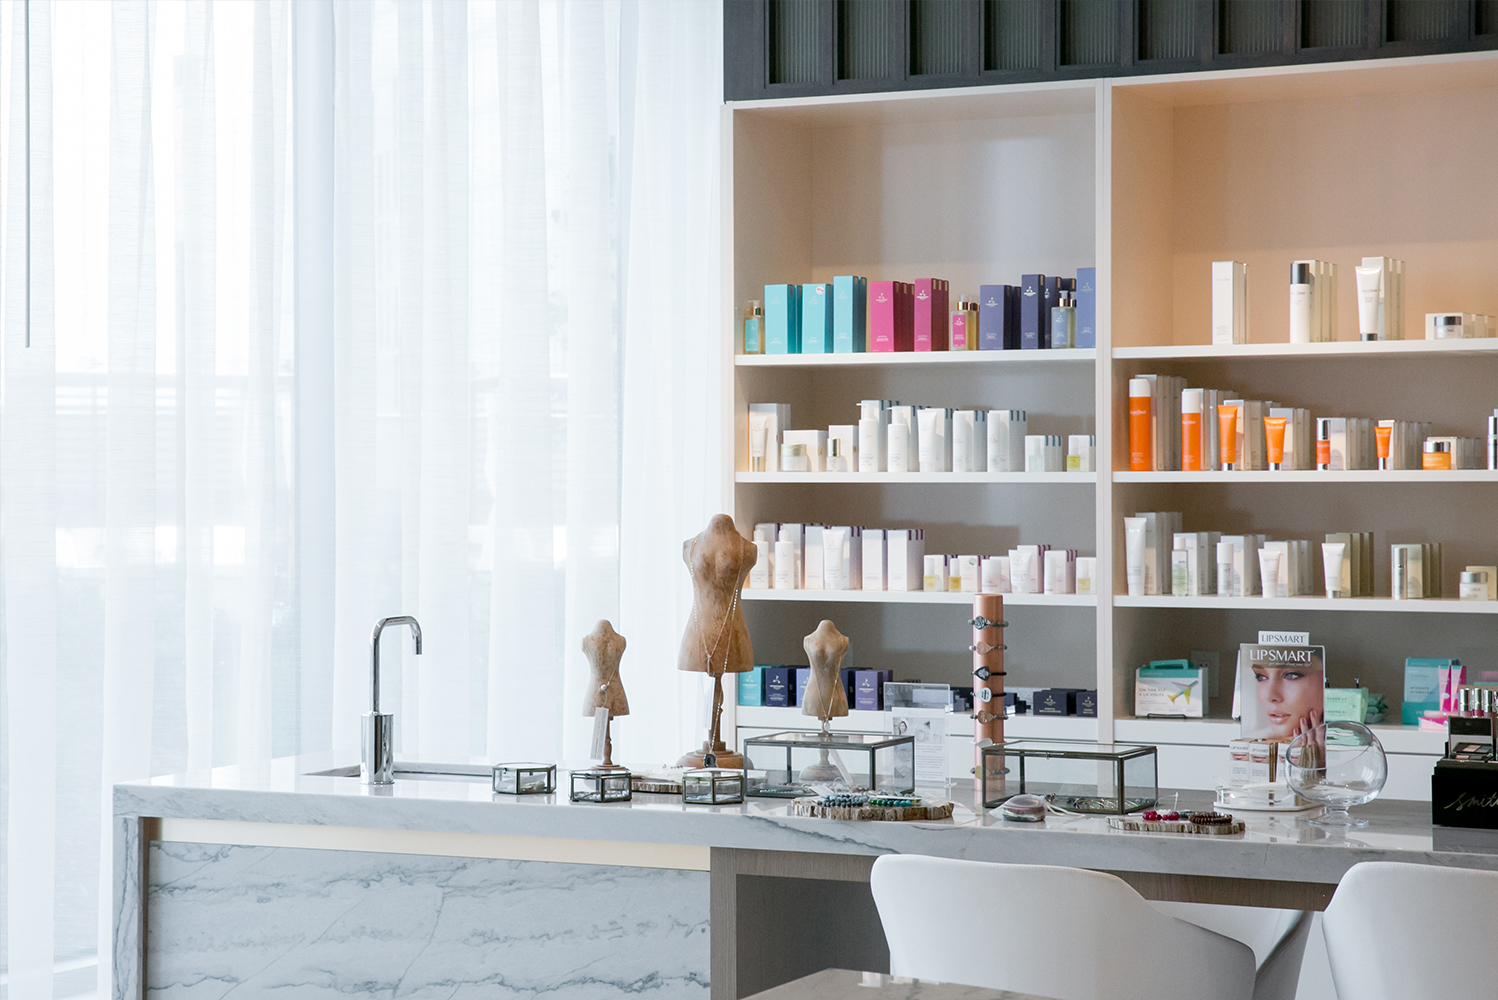 Curated by spa director Kendra Rice, the spa's treatment menu includes Aromatherapy Associates and Natura Bisse products.